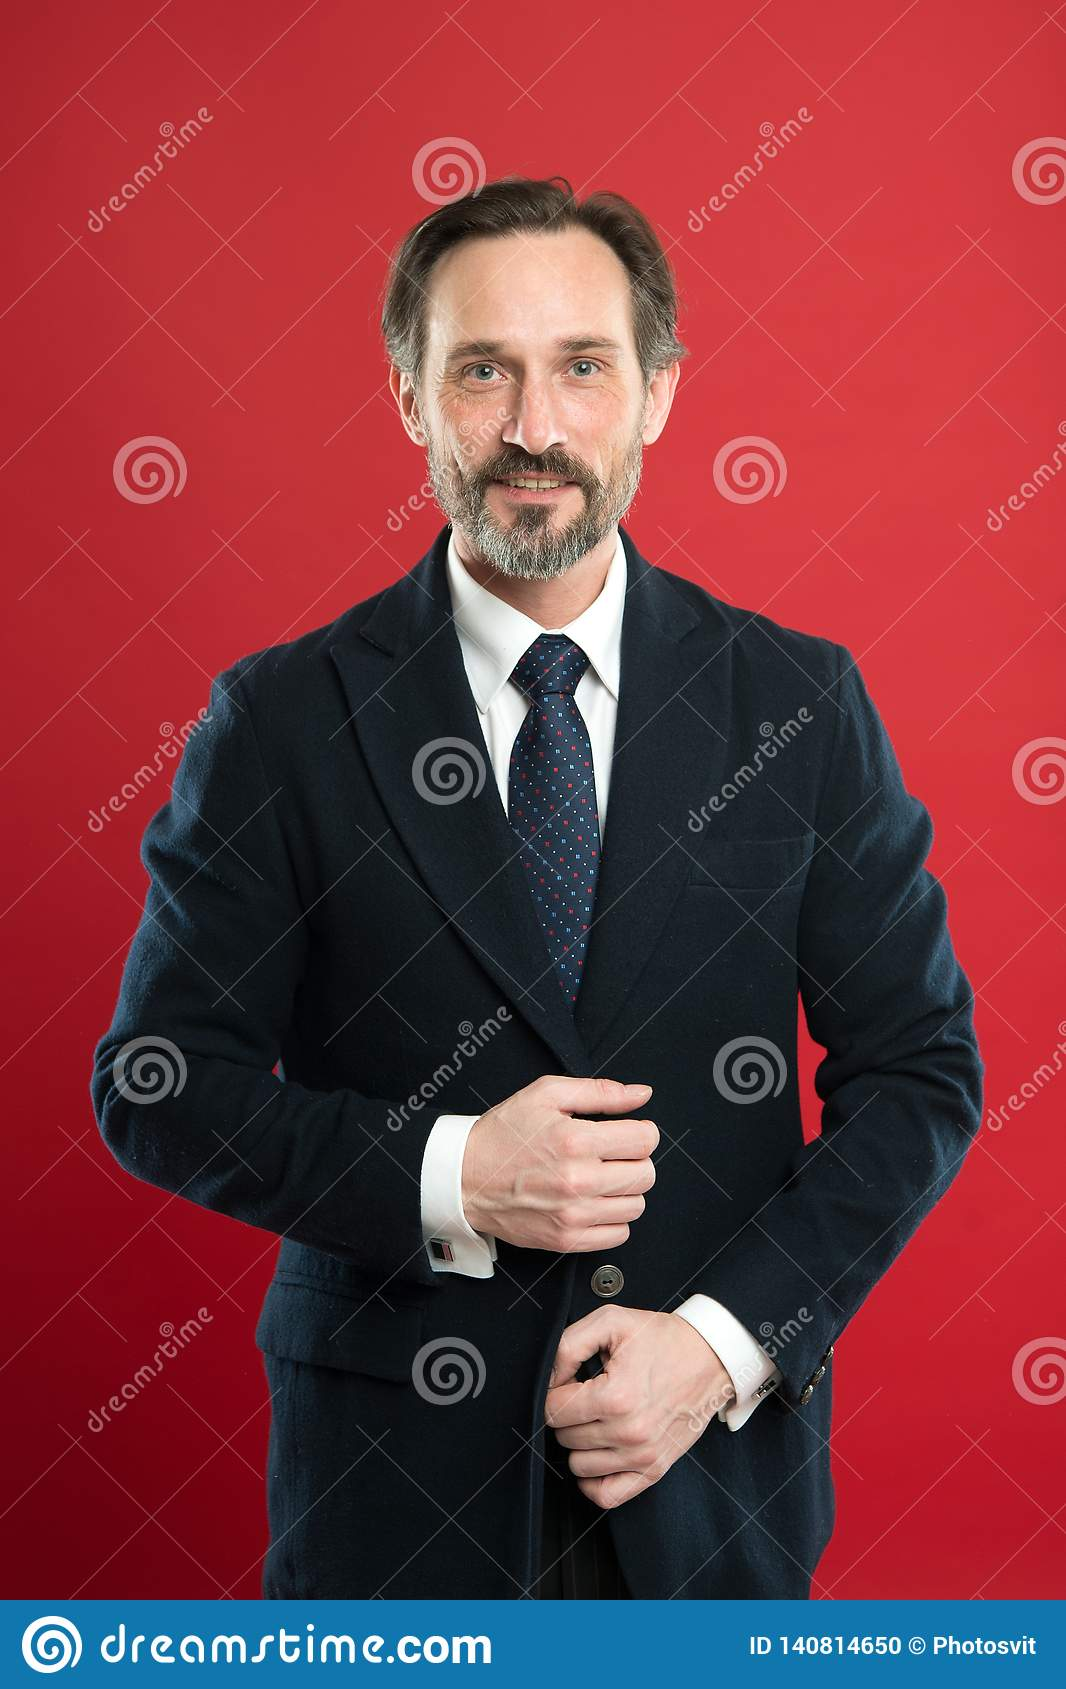 Well groomed. Hair grooming tips. Business man well groomed guy red background. Business people hairstyle. Stylish and